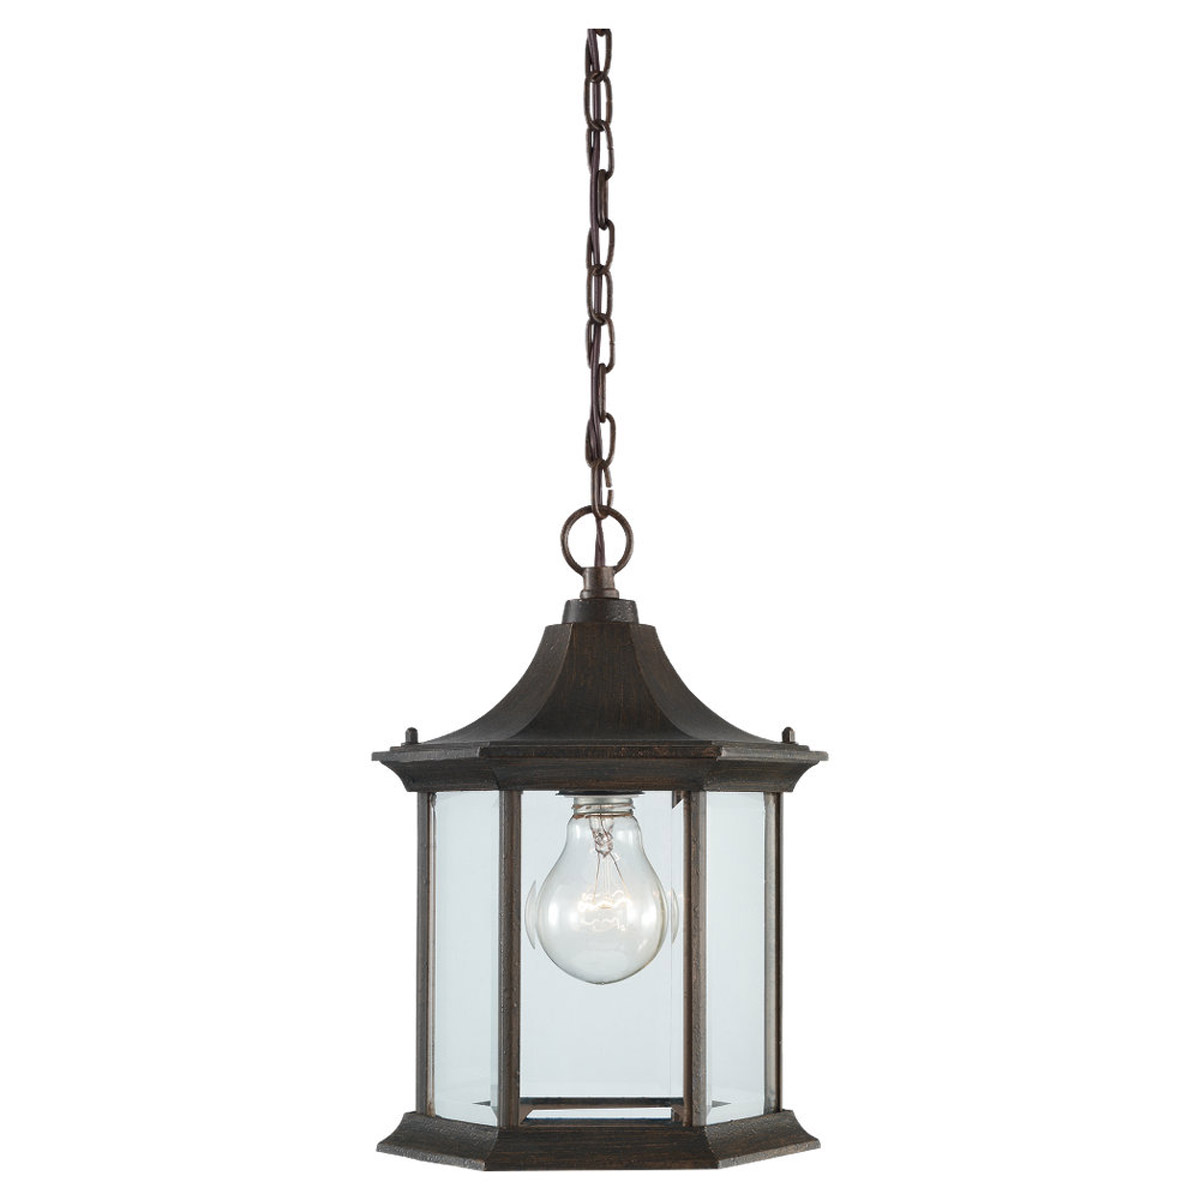 Sea Gull Lighting Ardsley Court 1 Light Outdoor Pendant in Textured Rust Patina 60136-08 photo